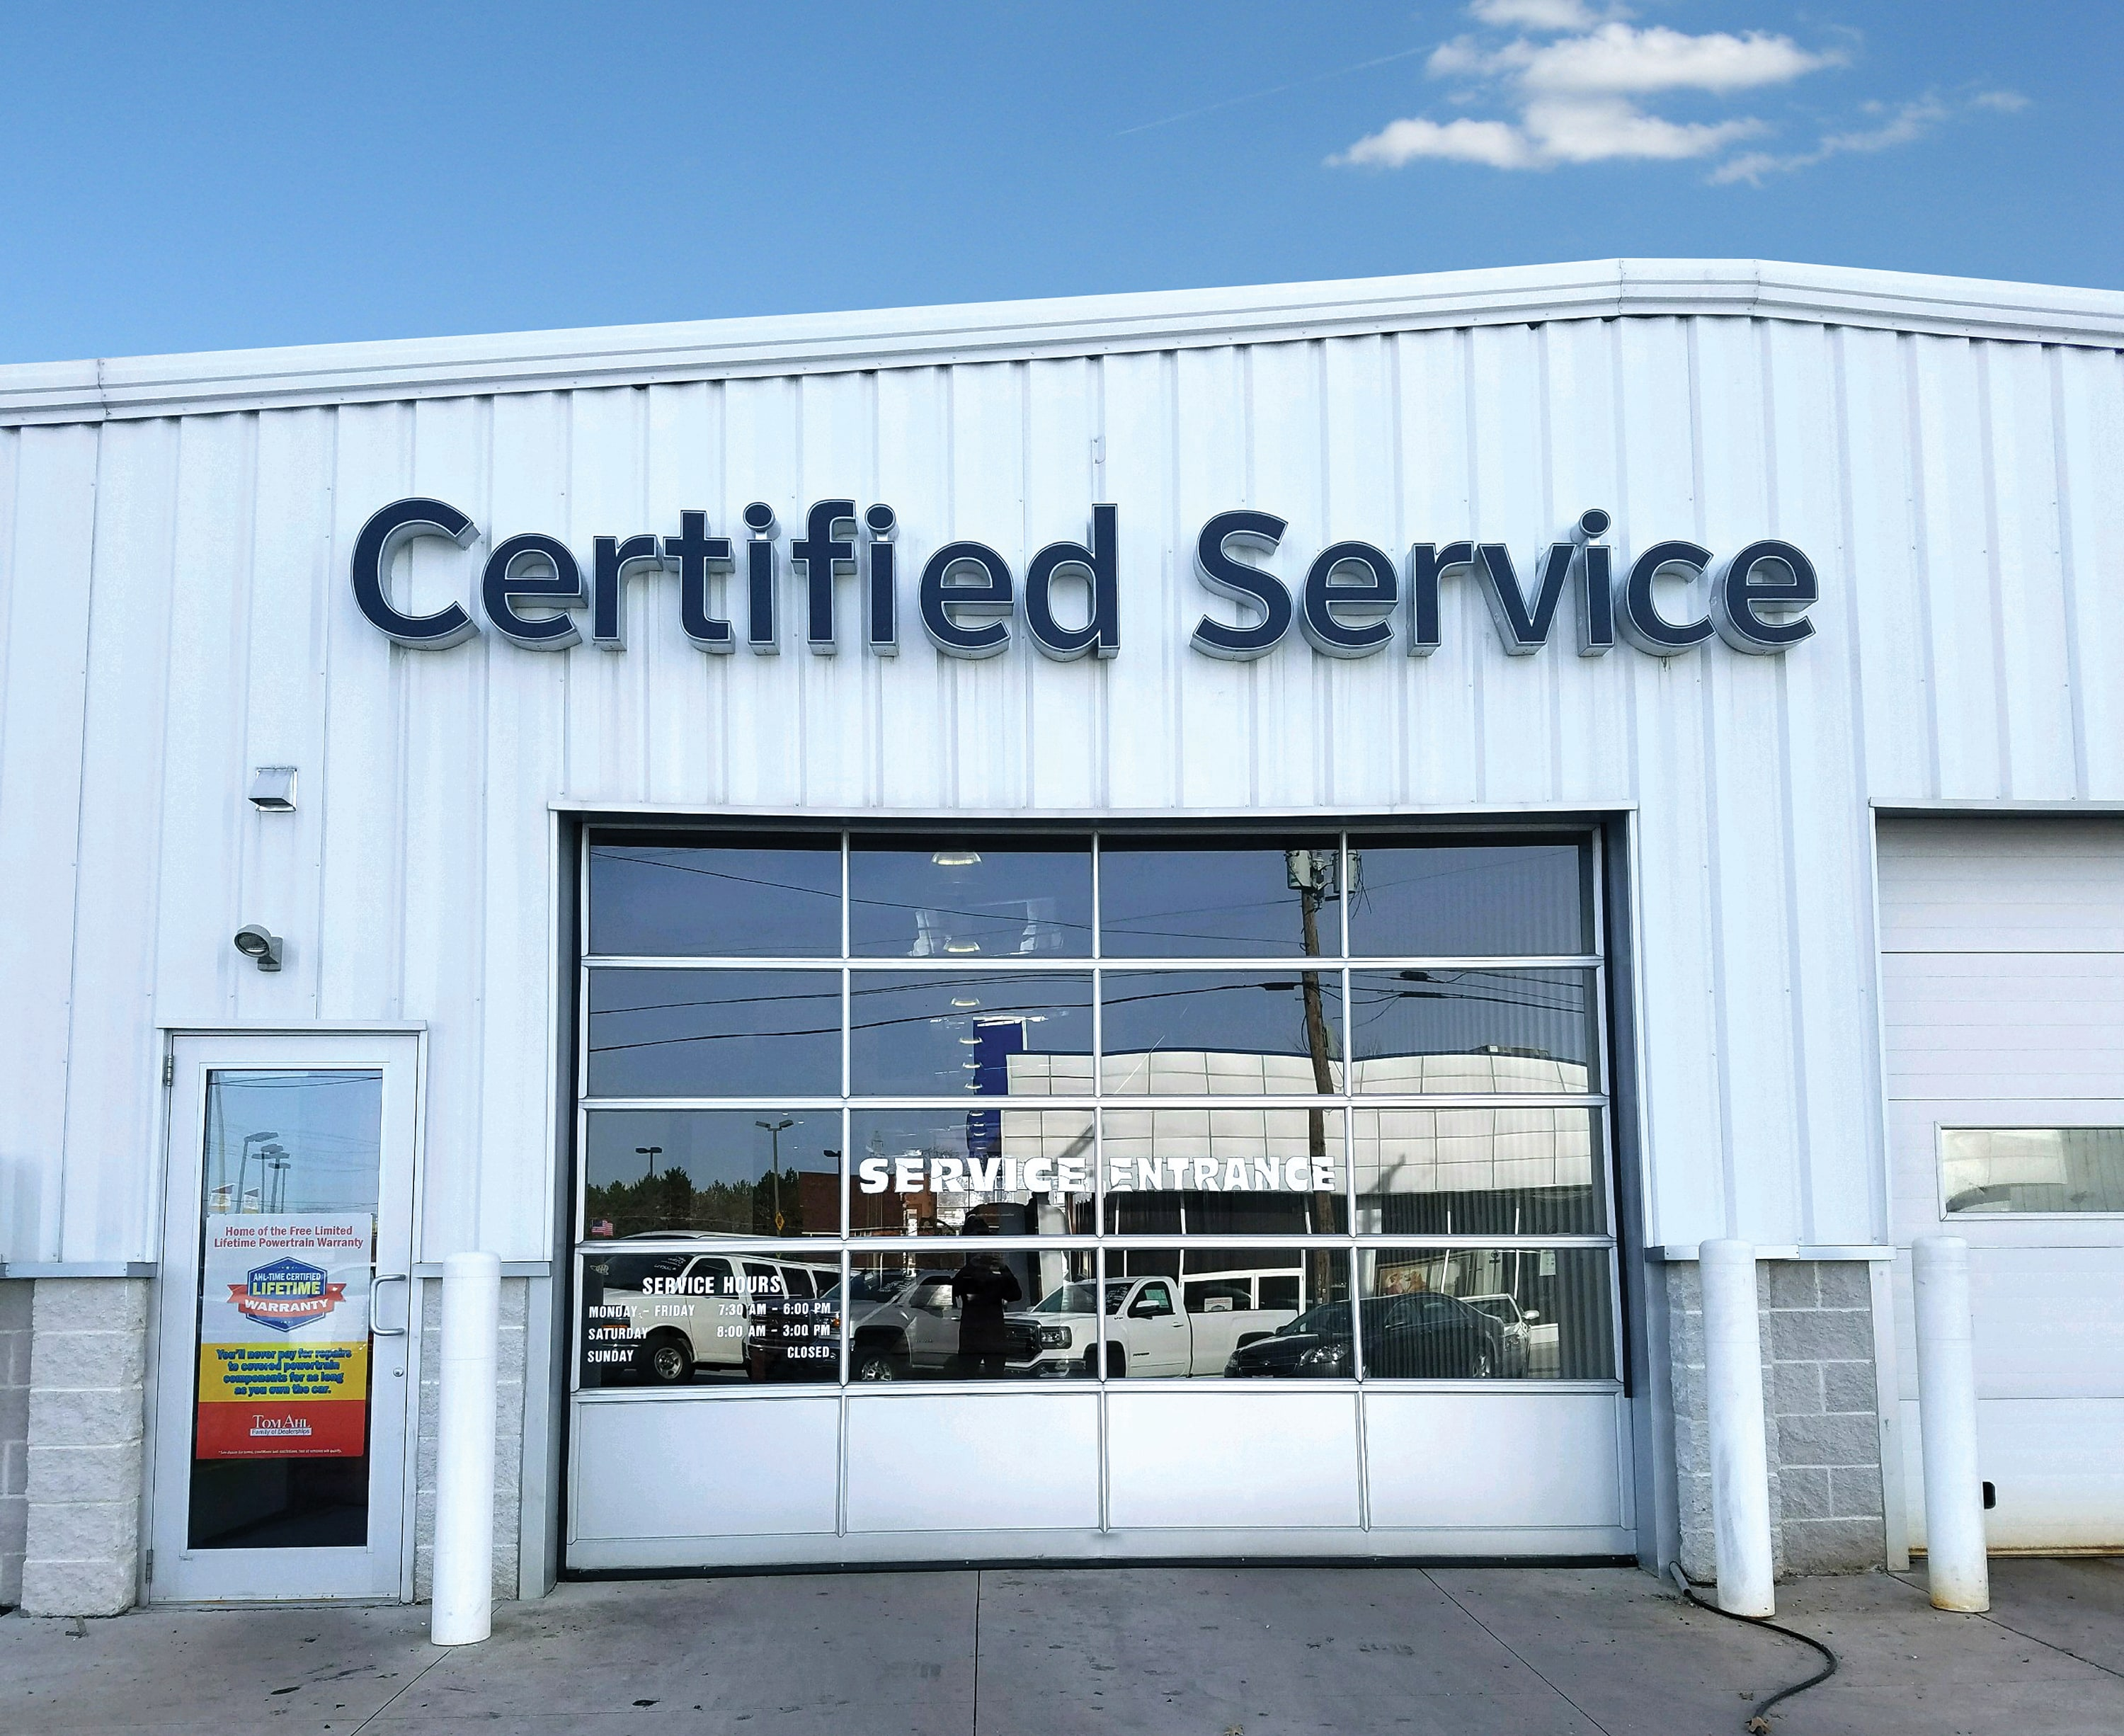 dealership township and dealerships buick of to about reputation the member townshipchevroletbuickgmc pei western frontofdealership careers is committed gmc as chevrolet passionate a at maintaining community